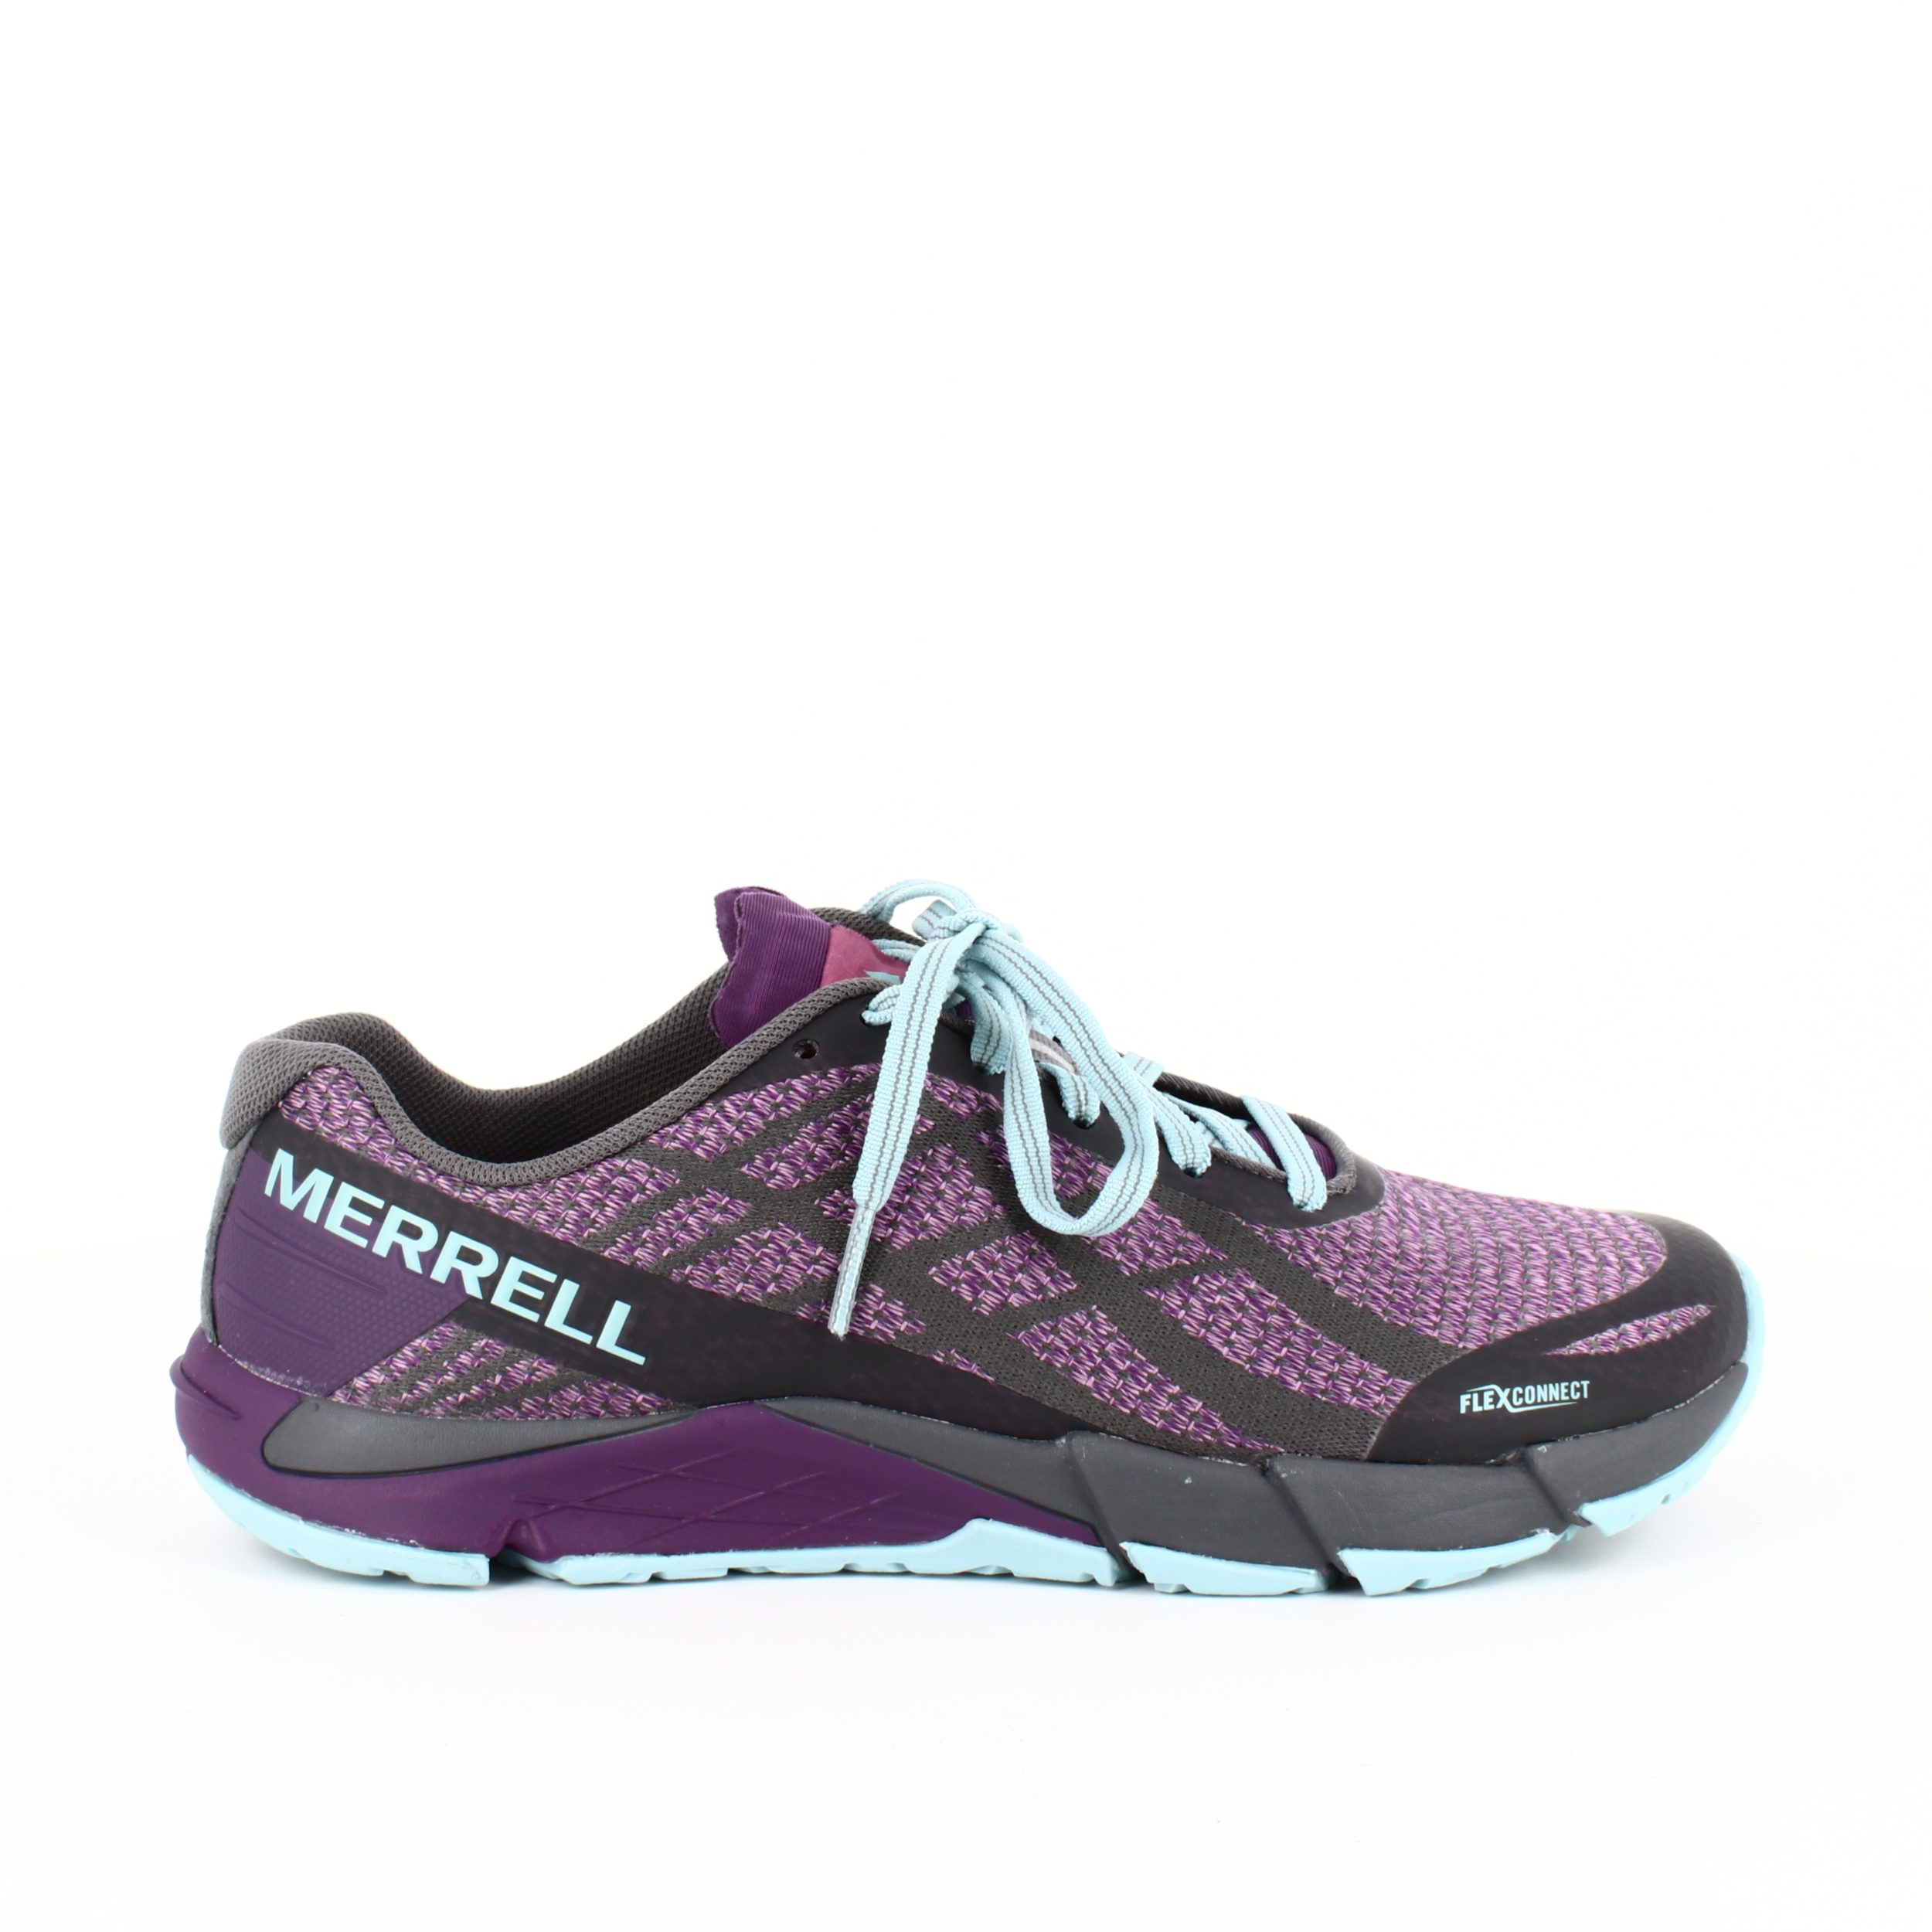 Image of   Merrell sneakers med flex shield og bare foot teknologi - 41